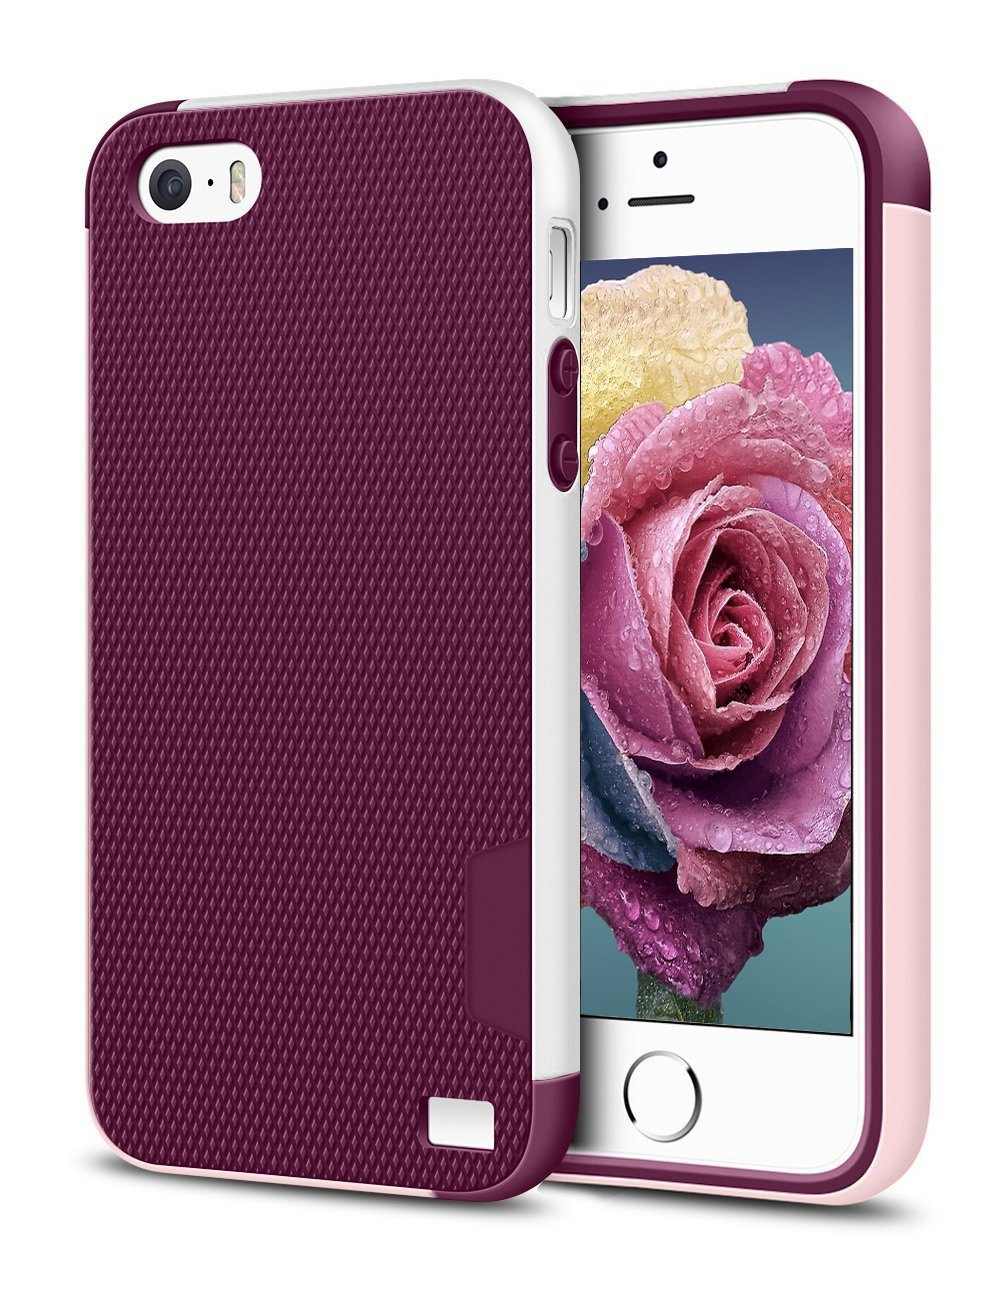 EXSEK iPhone 5/5S SE(2016) Case, Hybrid Impact Ultra Slim 3 Color Shockproof Case [Anti-Slip] [Extra Front Raised Lip] Scratch Resistant Soft Gel Bumper Rugged Case for iPhone 5/5S (Wine Red)